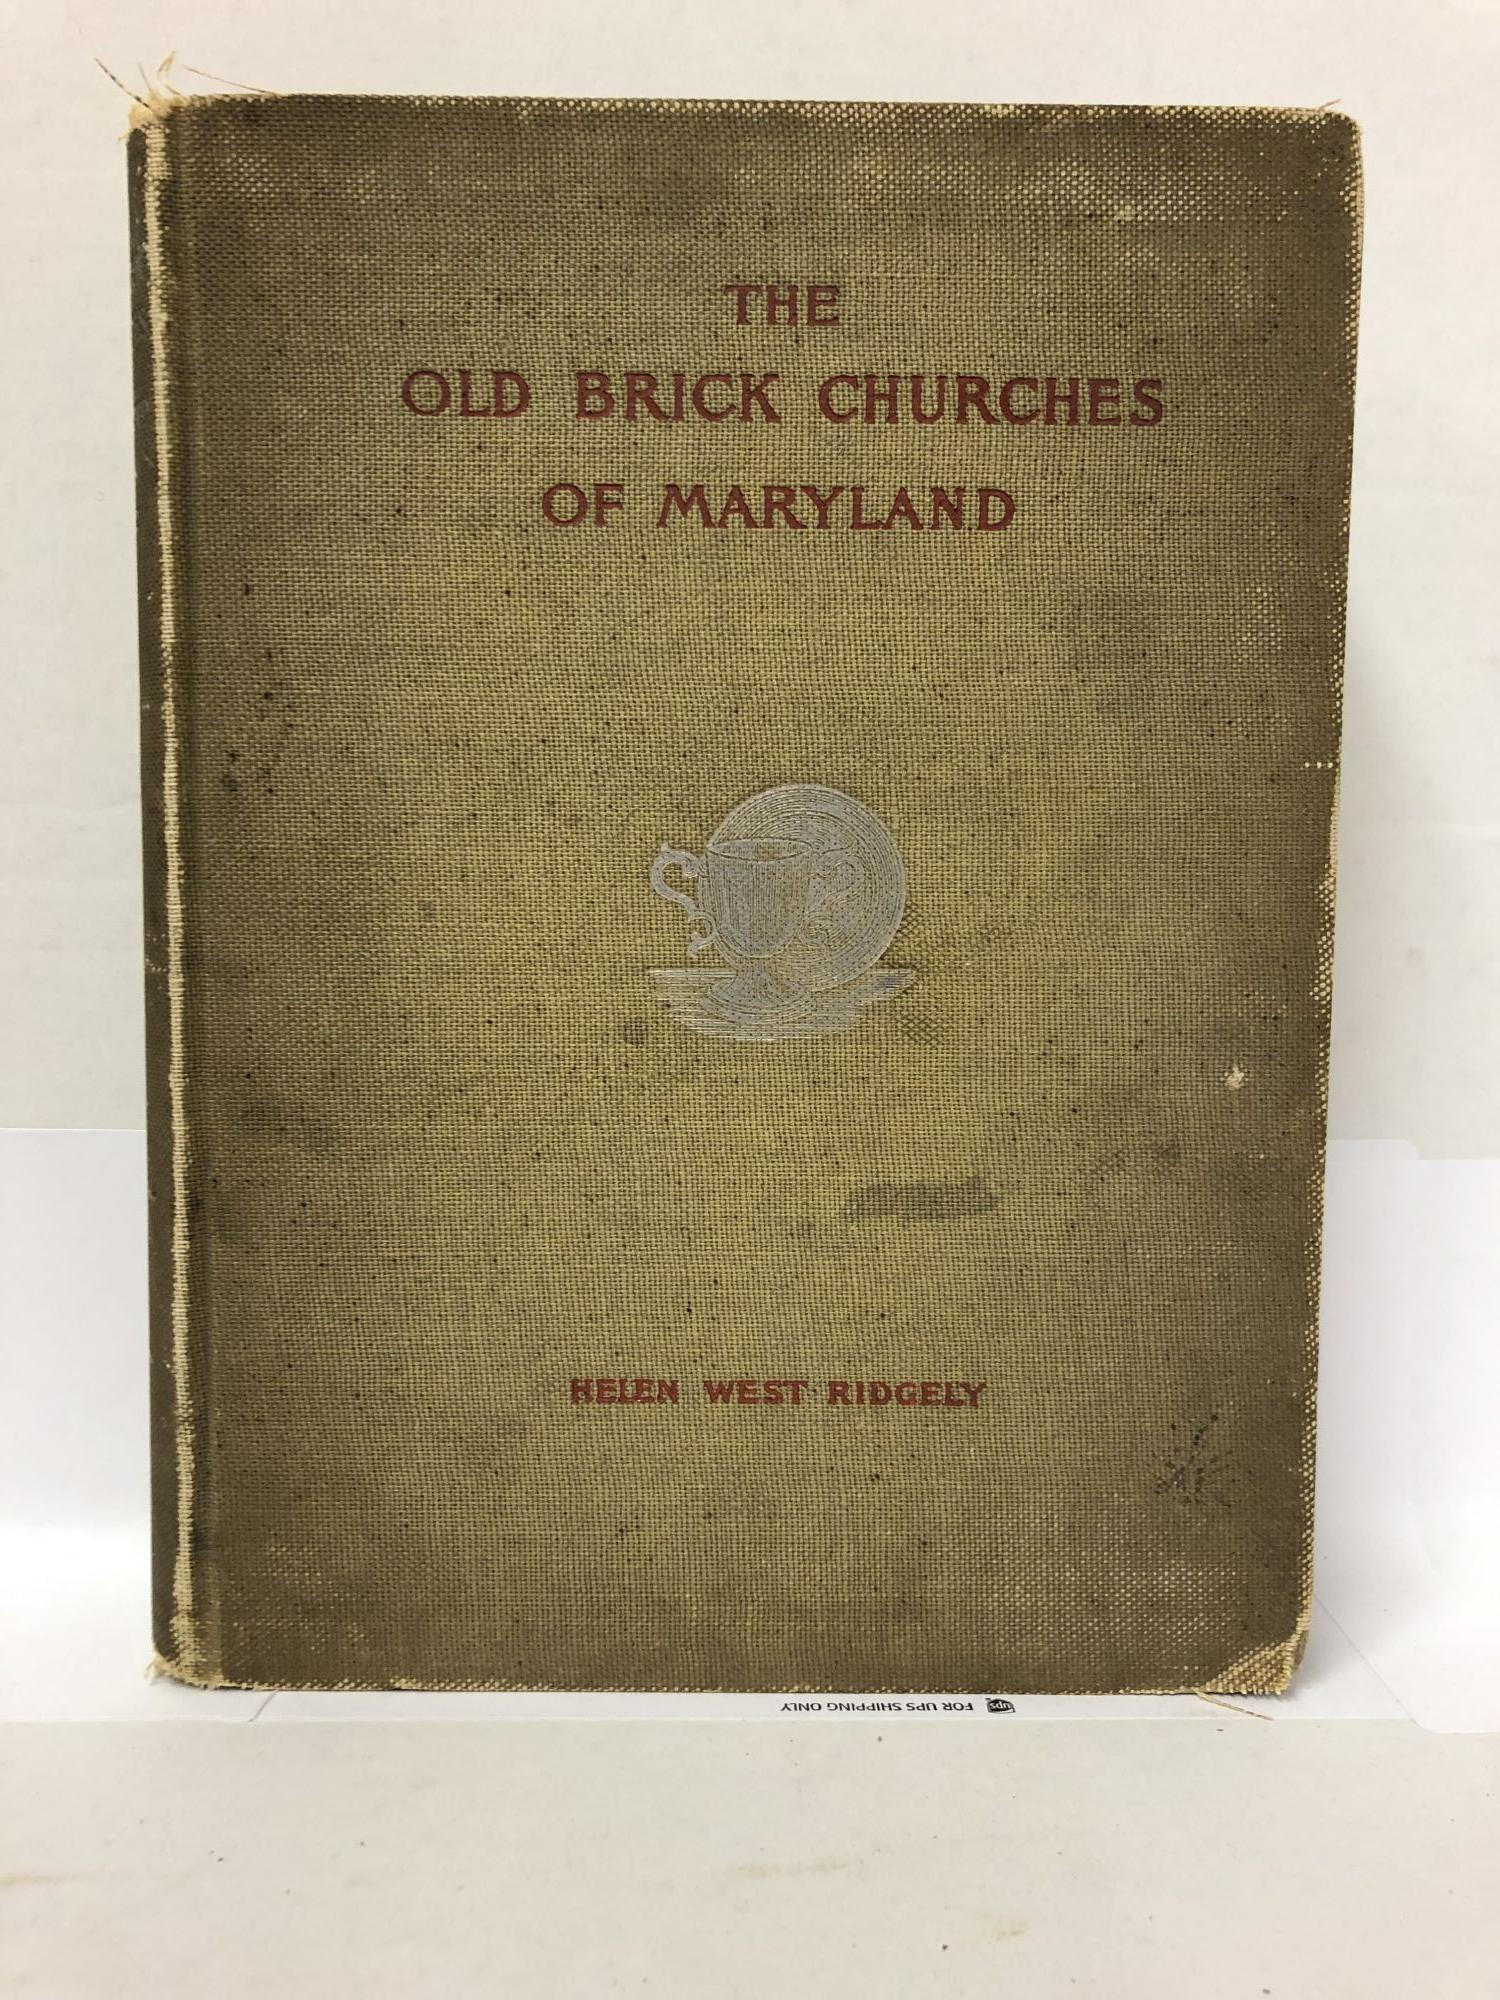 The Old Brick Churches of Maryland. Helen West Ridgely, Sophie De Butts Stewart, Author.